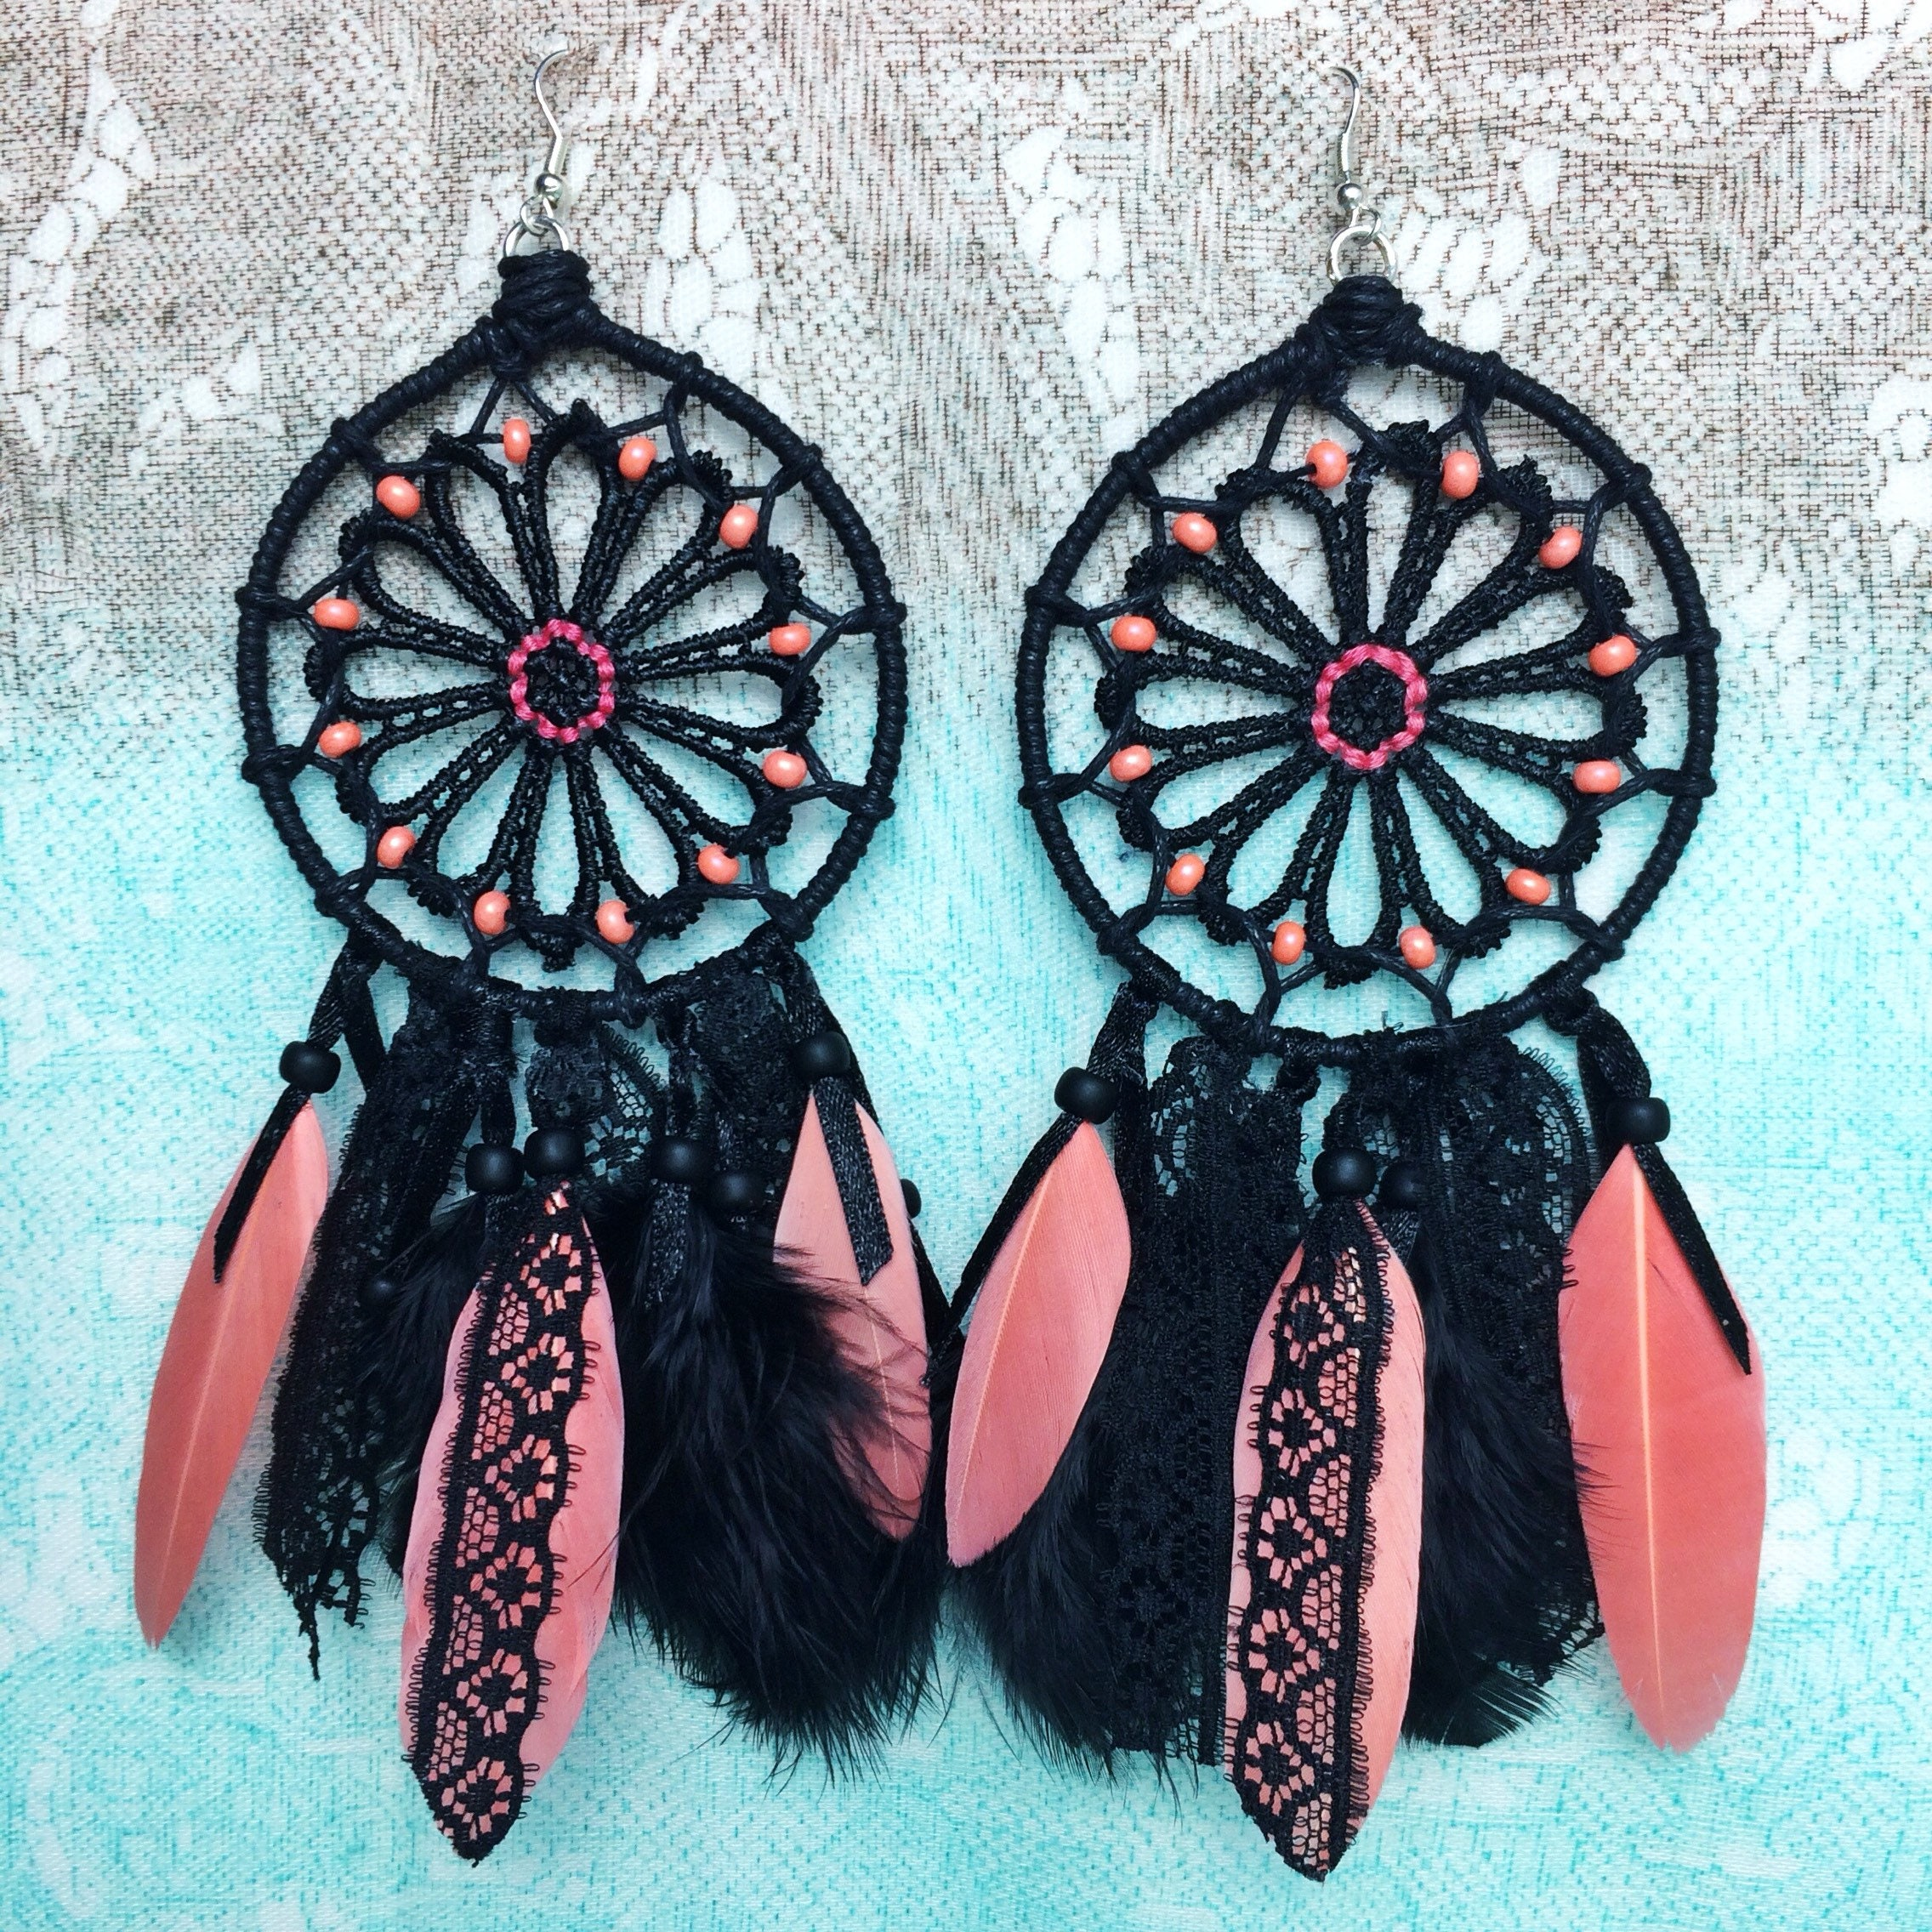 ddf3760dac4e Dream Catcher Feather Earrings in black, coral colors and lace | Handmade  Jewlery | Authentic Earrings | Gift for Women | Special Occasion